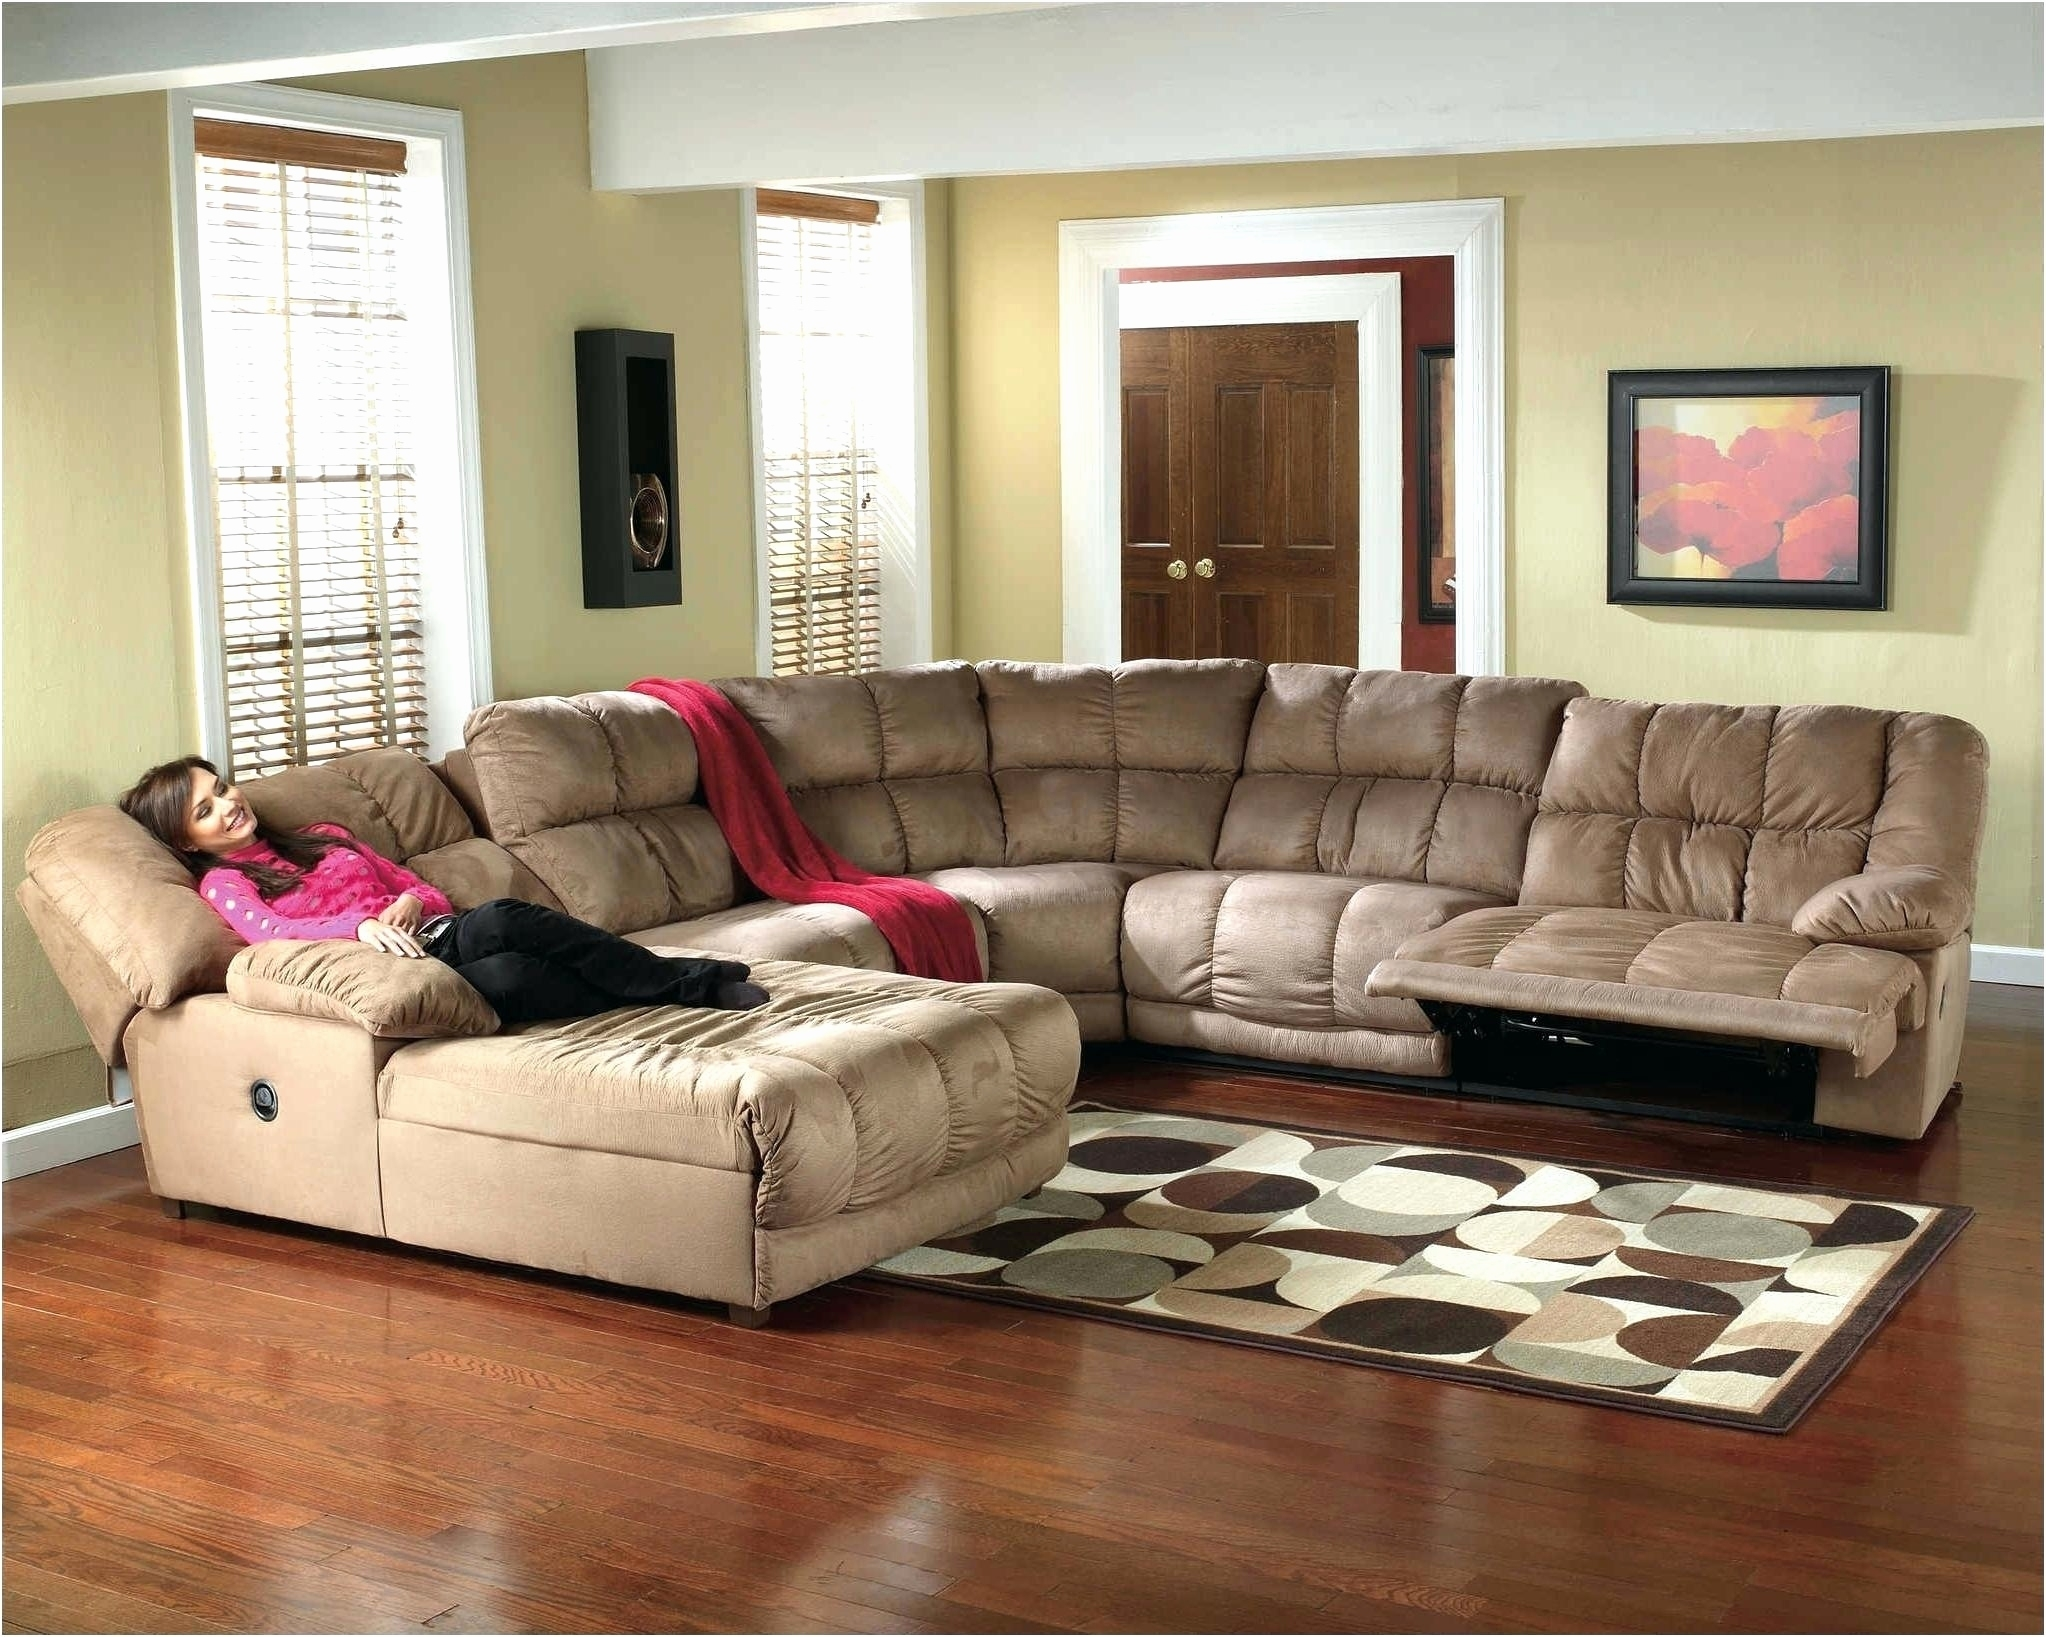 Awesome U Shaped Sofa 2018 – Couches And Sofas Ideas inside Reclining U Shaped Sectionals (Image 3 of 15)